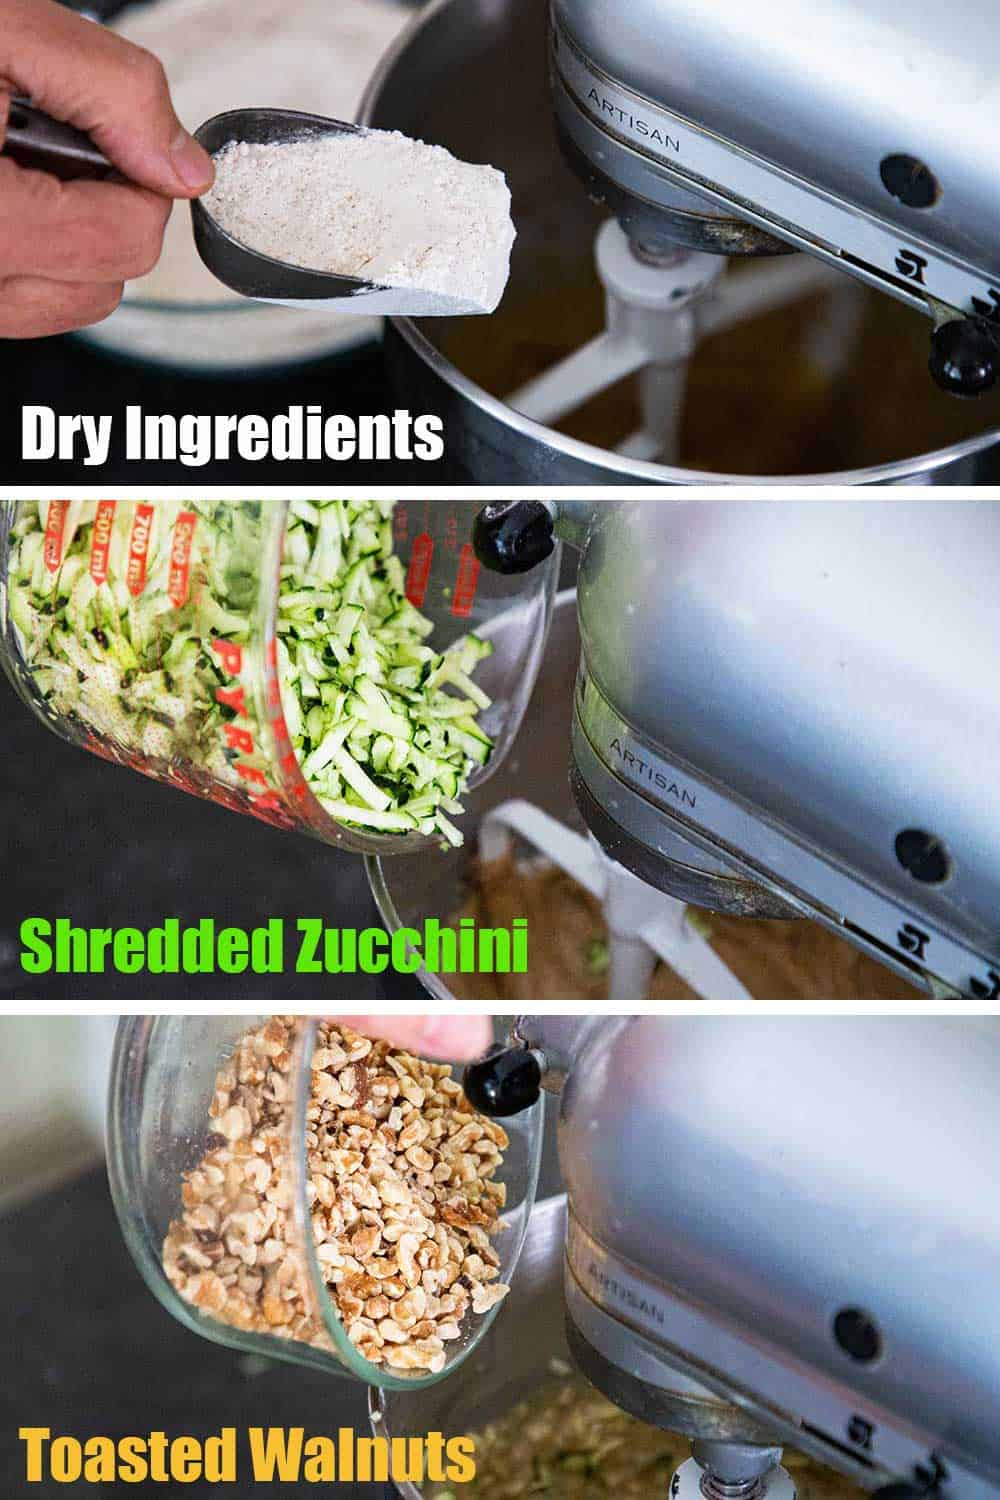 A person using a scooper to add flour into a mixer, and then the person is dumping shredded zucchini into the mixer, and then chopped walnuts, in the mixer.